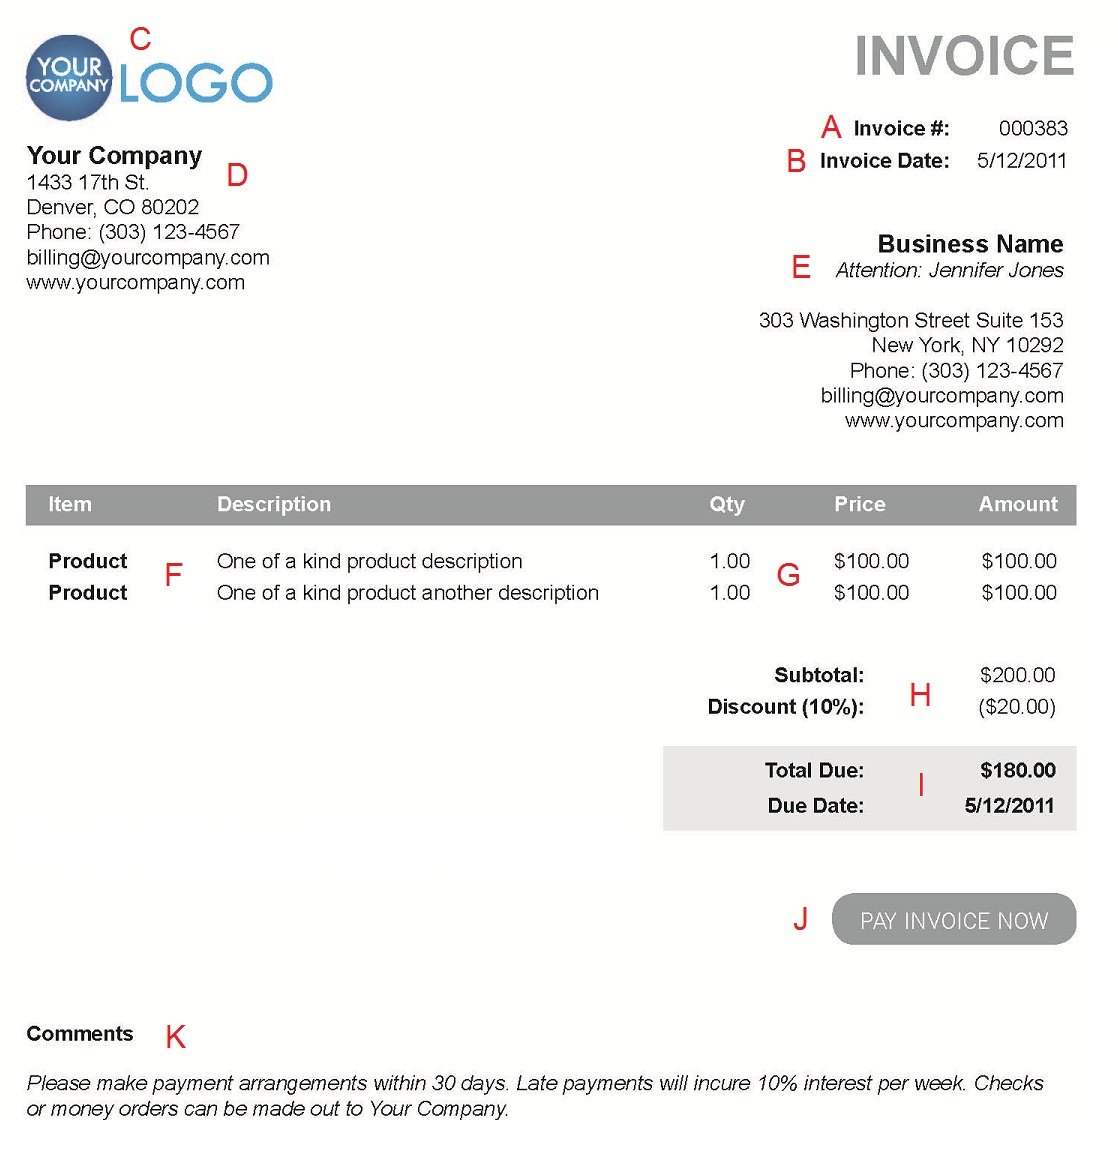 Opposenewapstandardsus  Scenic The  Different Sections Of An Electronic Payment Invoice With Entrancing A  With Astounding Invoice Receivables Also What To Write On An Invoice In Addition Invoice Template Services Rendered And Invoice Format In Excel Download As Well As Invoicing Discounting Additionally Invoice Payment System From Paysimplecom With Opposenewapstandardsus  Entrancing The  Different Sections Of An Electronic Payment Invoice With Astounding A  And Scenic Invoice Receivables Also What To Write On An Invoice In Addition Invoice Template Services Rendered From Paysimplecom